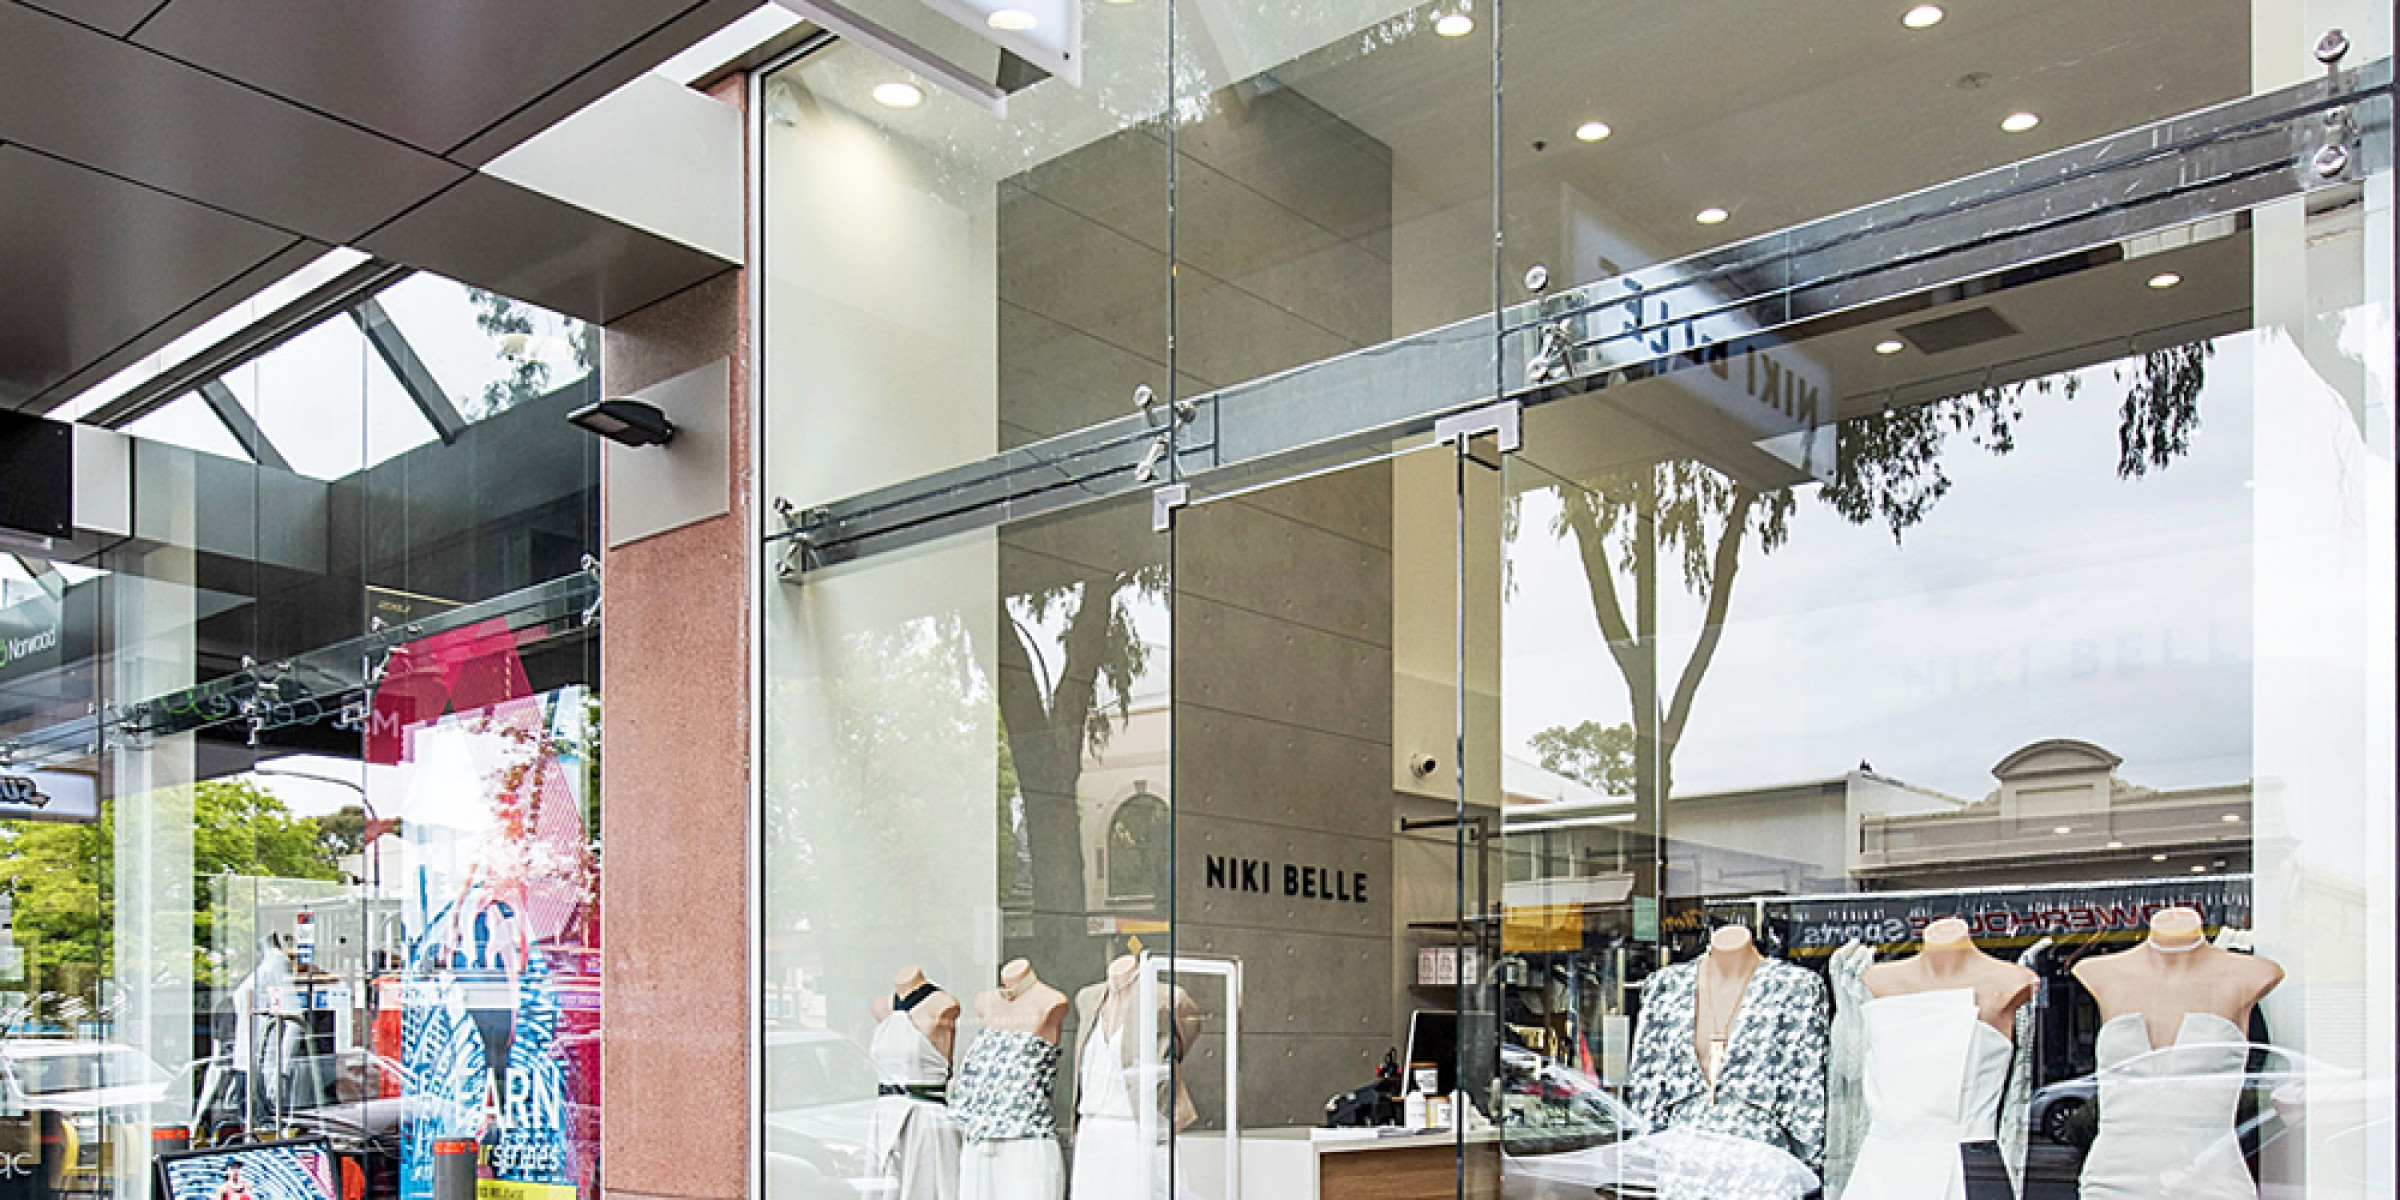 Nikki Belle commercial architecture store entry perspective